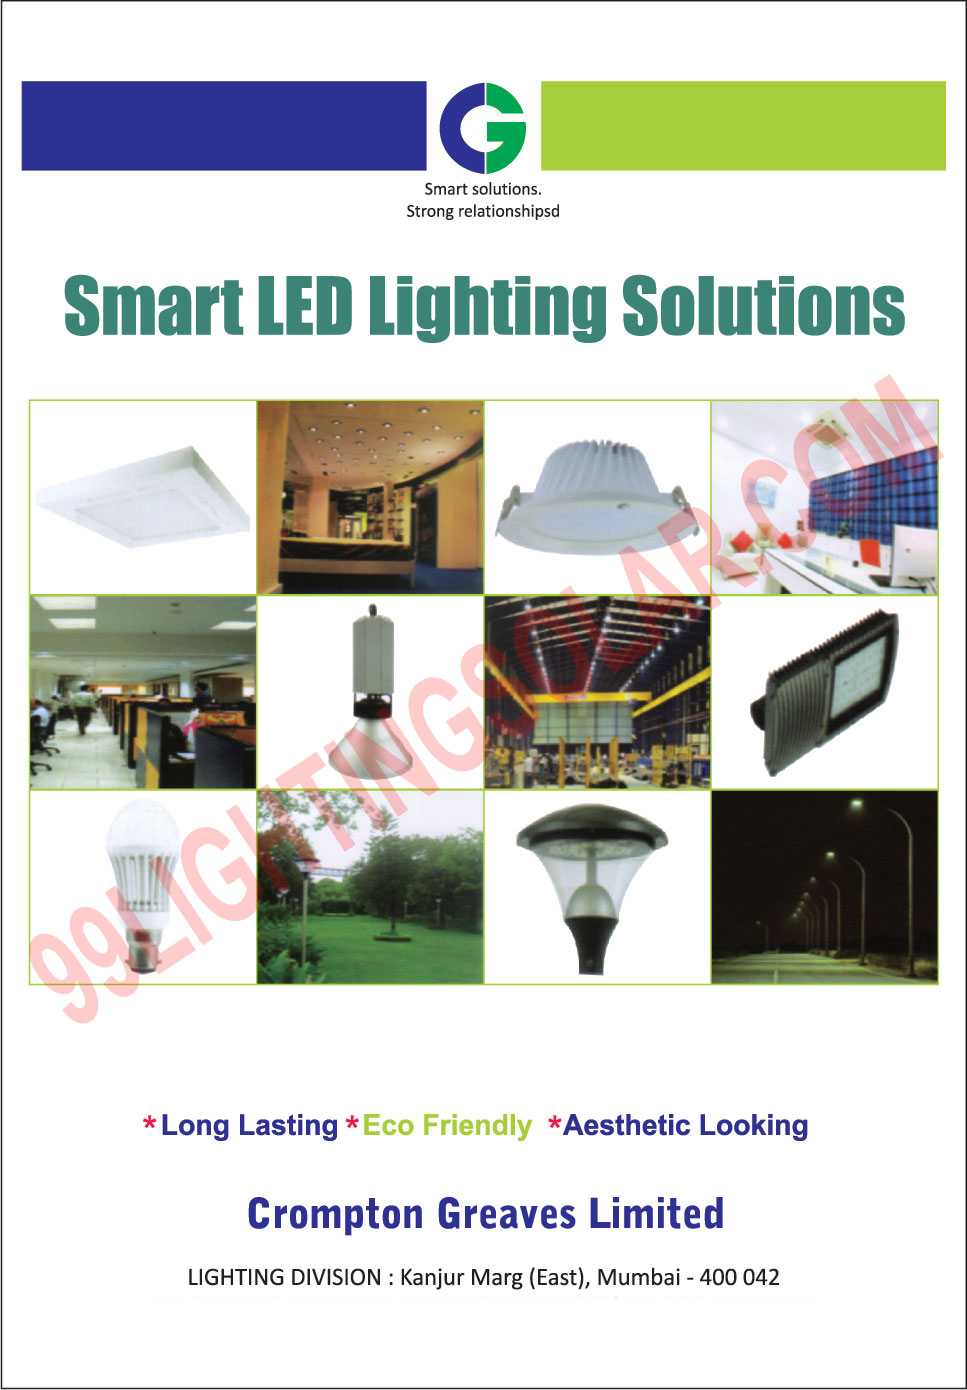 Electrical Items, Electrical Products, Domestic Fans, Industrial Fans, LED Lights, Solar Light Solutions, Led Tube Lights, Incandescent, Halogen, FTL, CFL, Led Lamp, Commercial Luminaire, Industrial Luminaires, Street light Luminiares, Landscape Luminaires, Flood Light Luminaries, CG Fael Luce, Led Luminaries, Super Saver Lamps, Control Gear, Control Accessories, Electronic Ballast, Fans